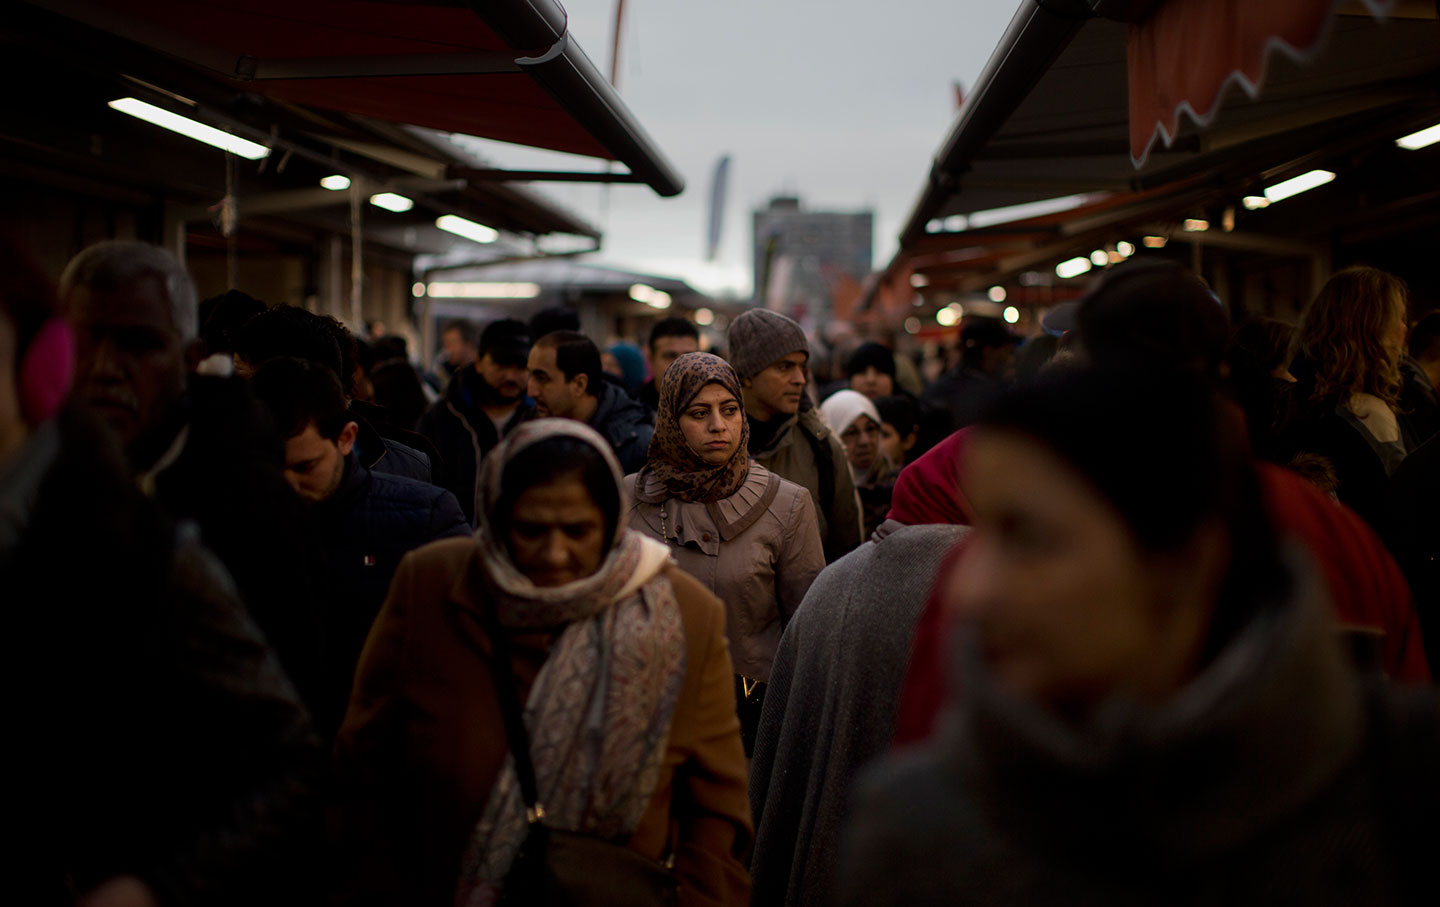 Crowded market at The Hague